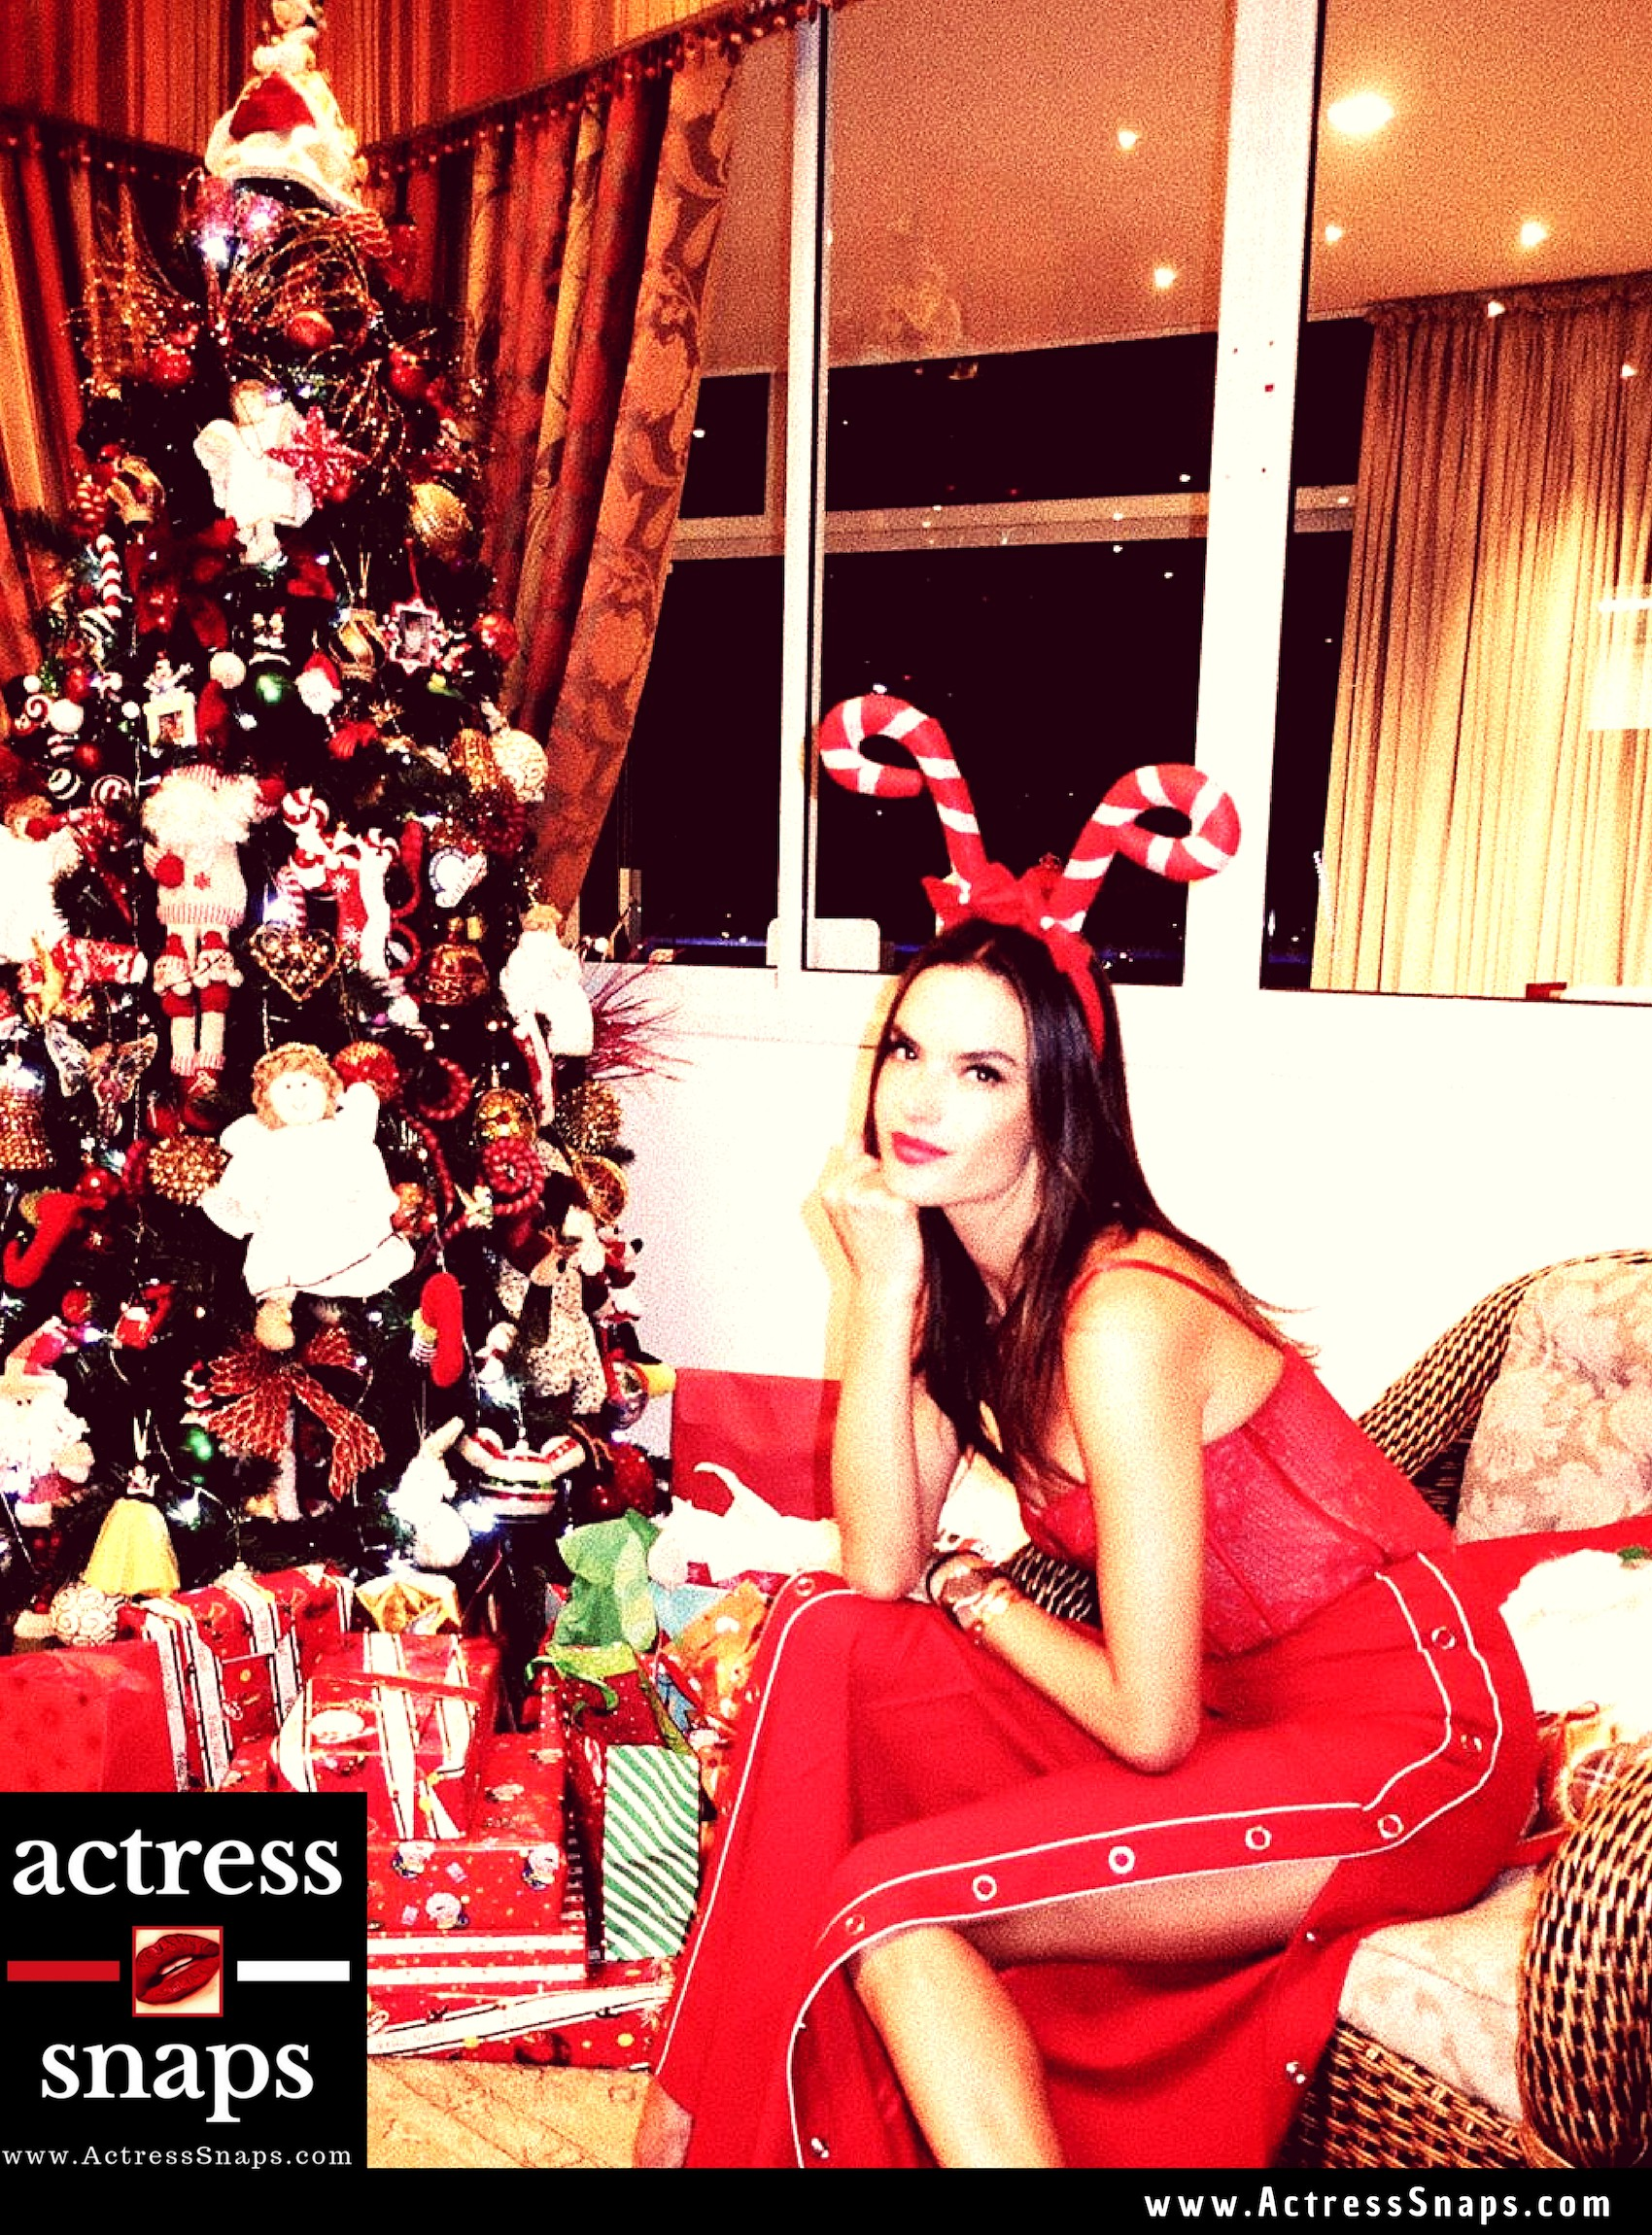 Alessandra Ambrosio wishing Fans a merry Christmas with this Photo post #VanessaHudgens